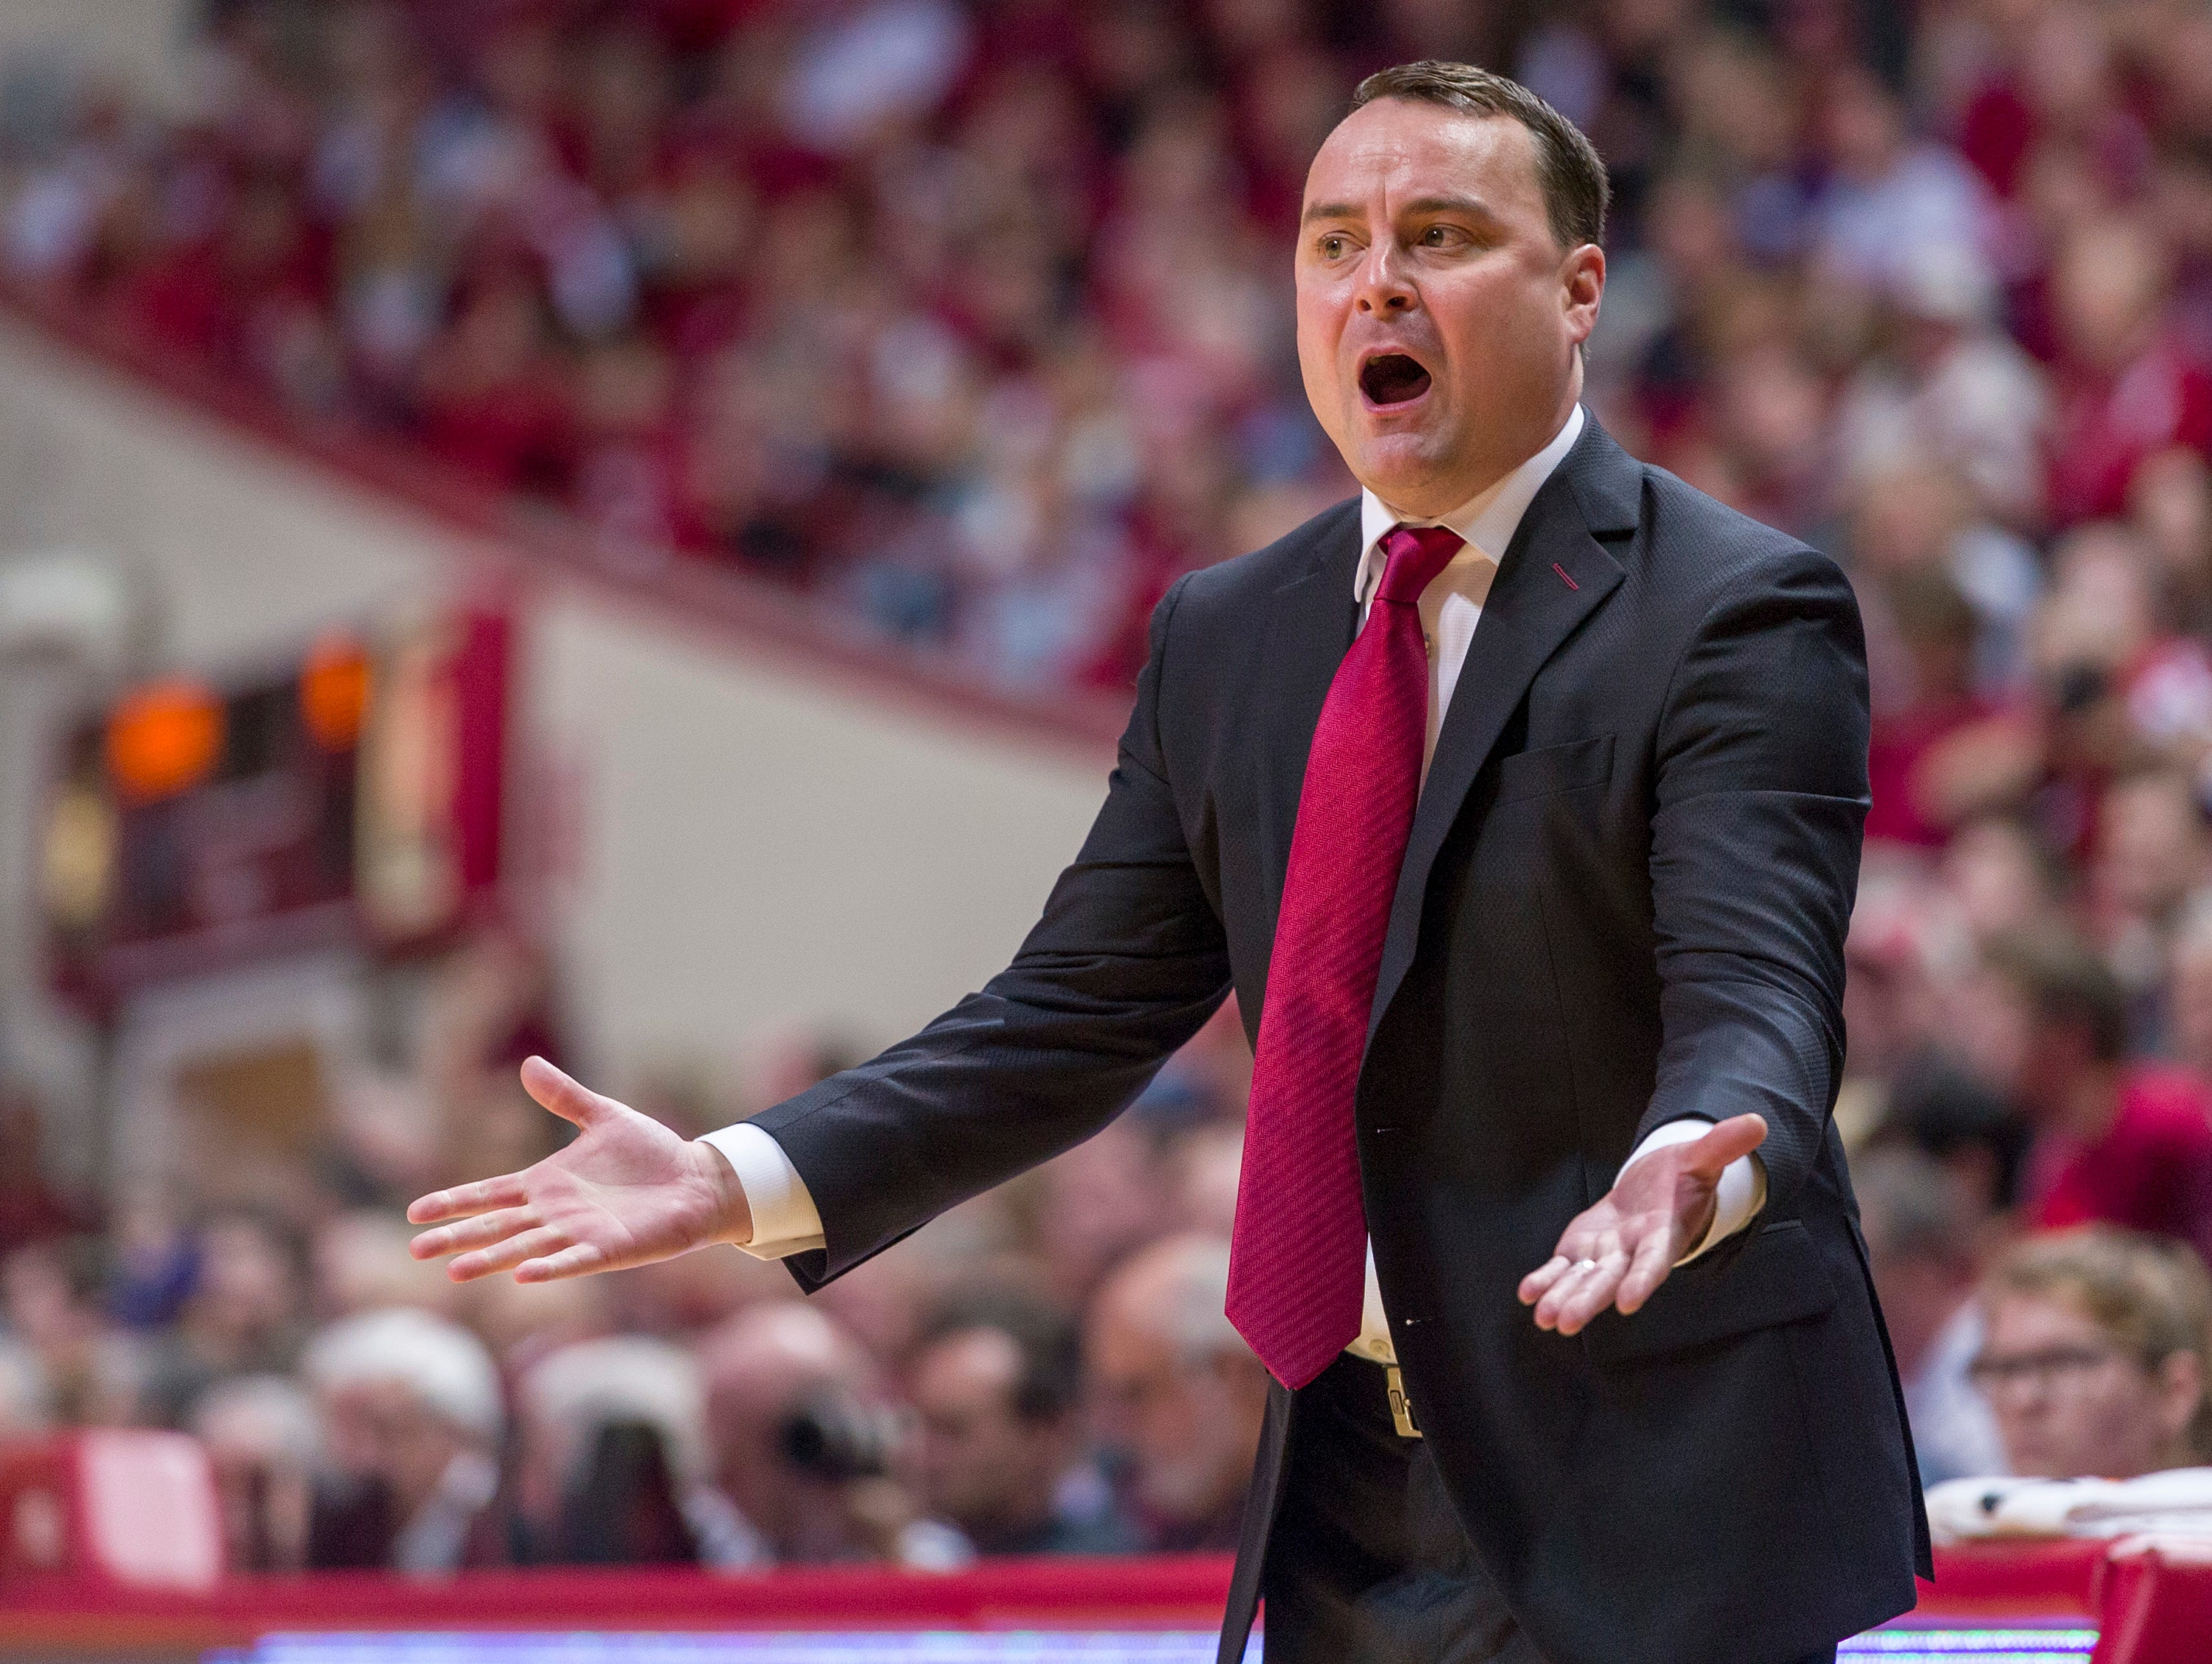 Indiana head coach Archie Miller reacts to a call during the first half of an NCAA college basketball game against Northwestern Saturday, Dec. 1, 2018, in Bloomington, Ind.